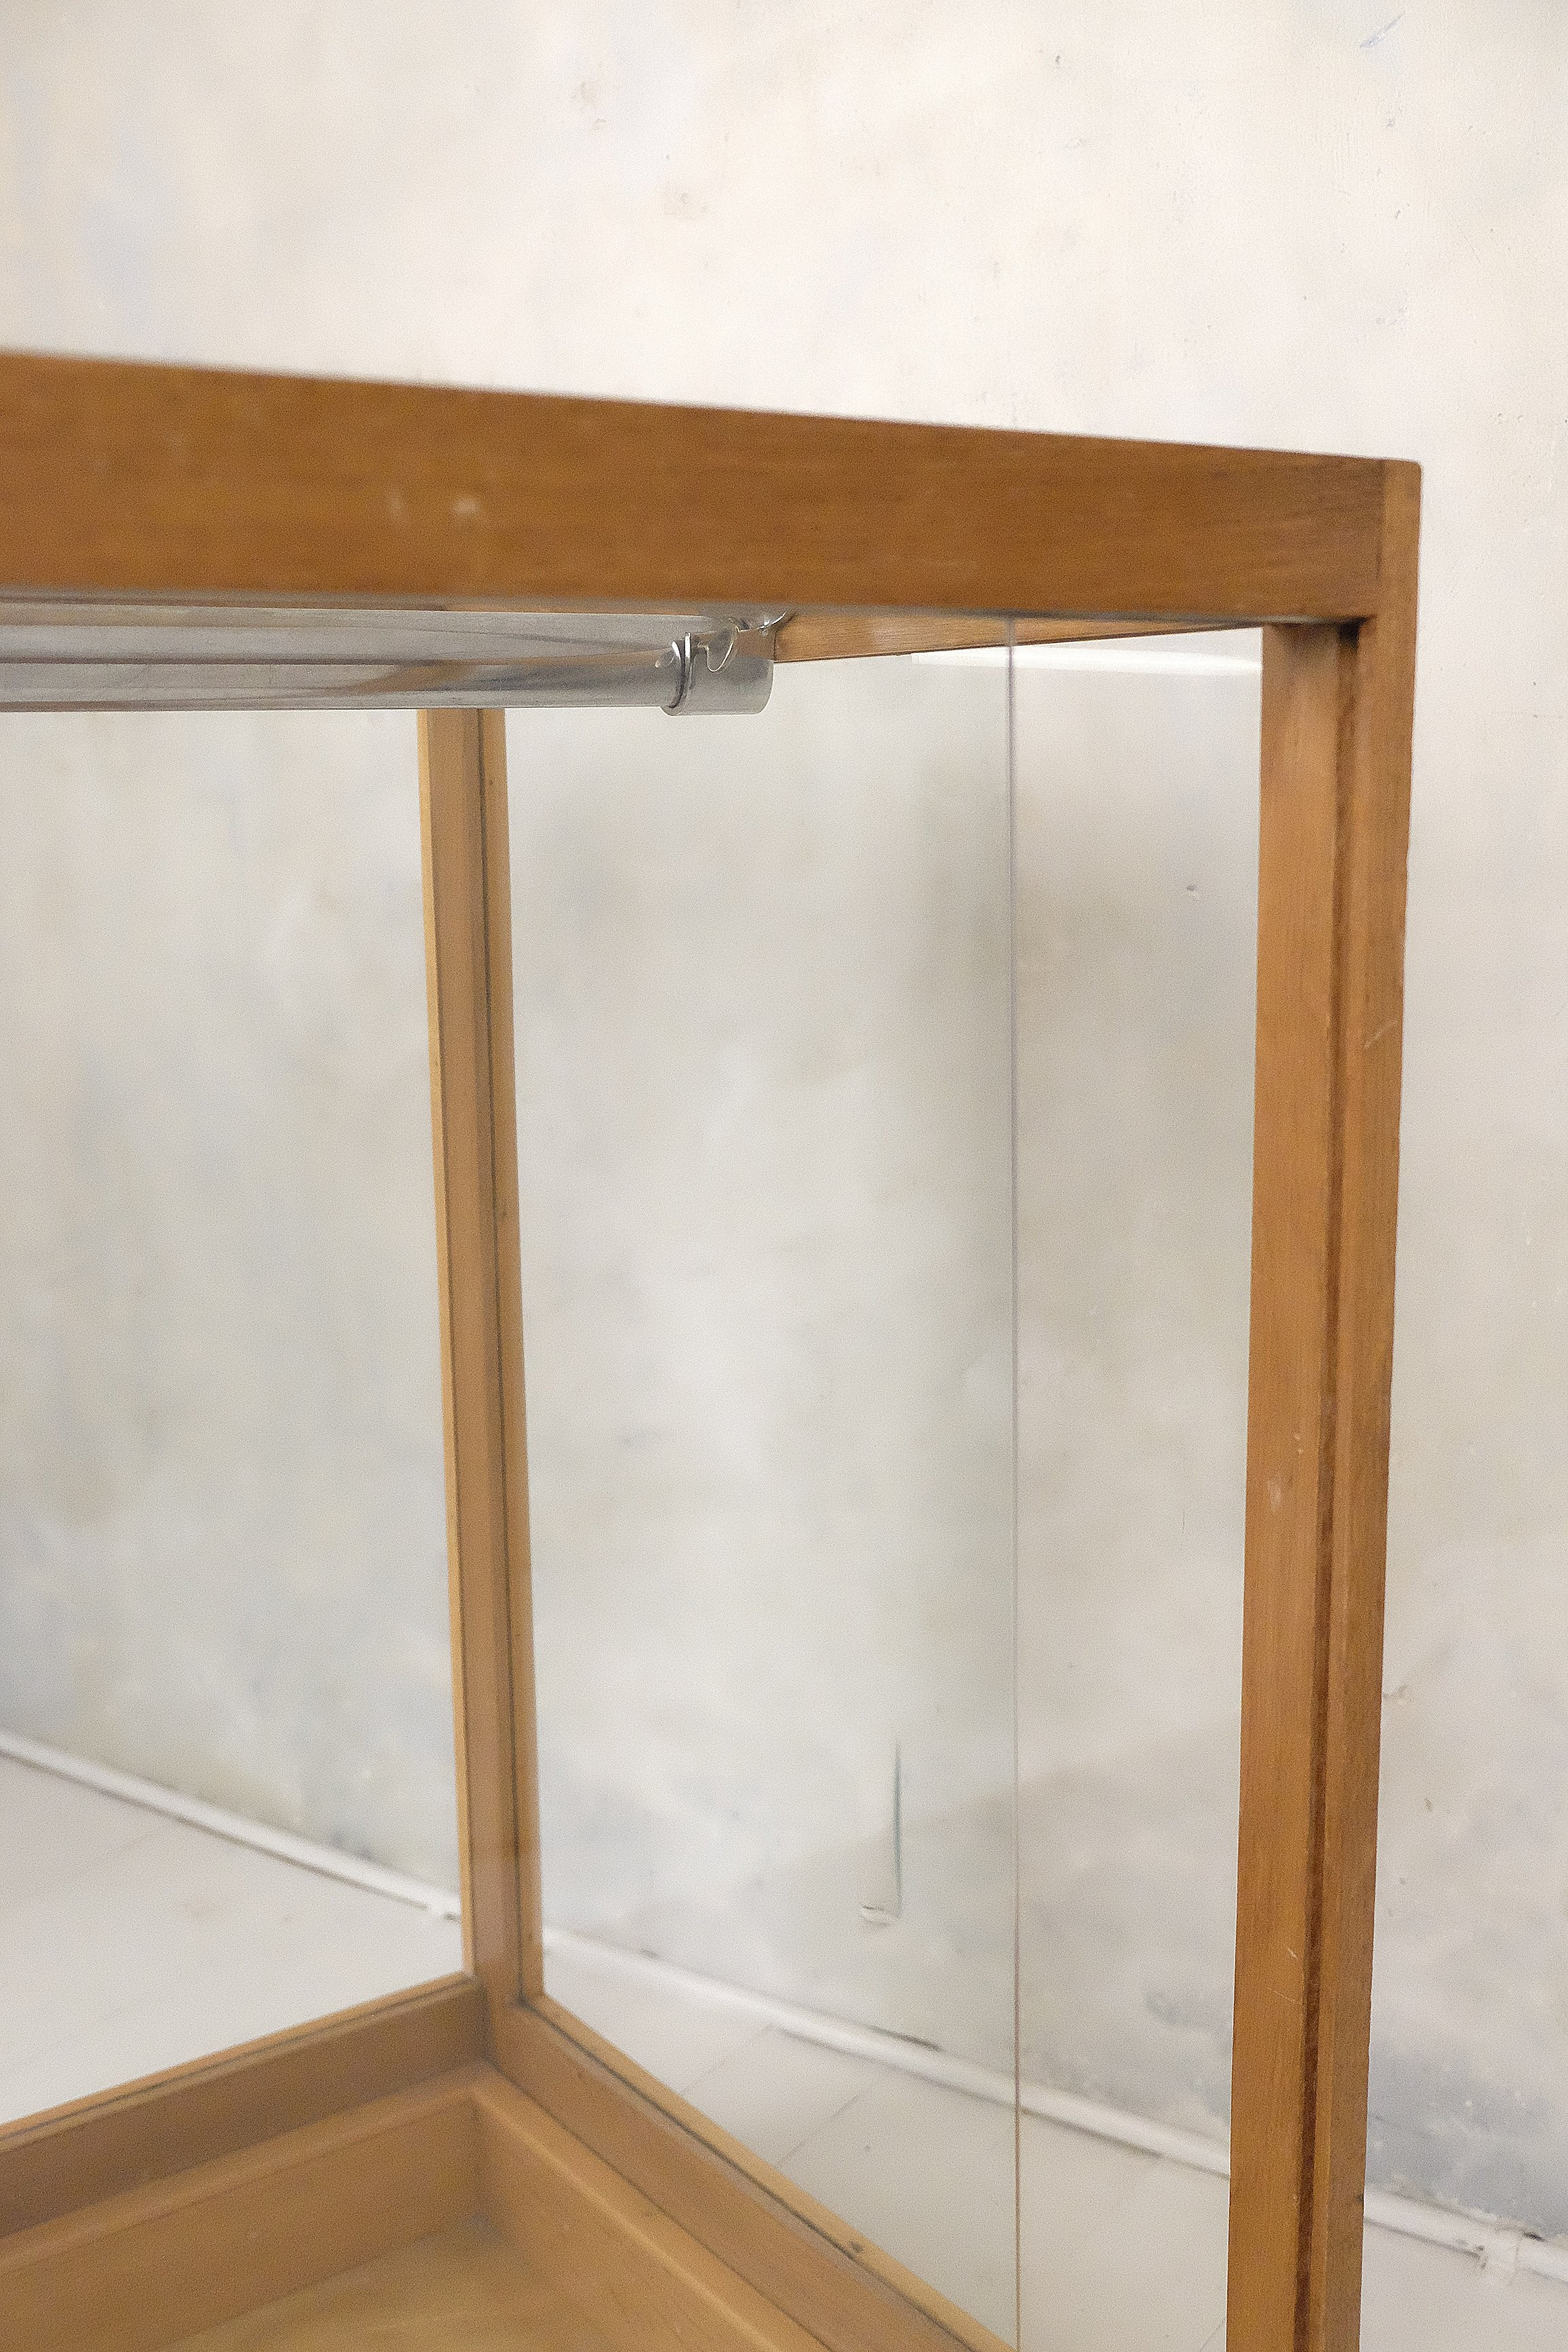 Vintage Counter With 2 Sliding Doors In The Back 1950s Design Market